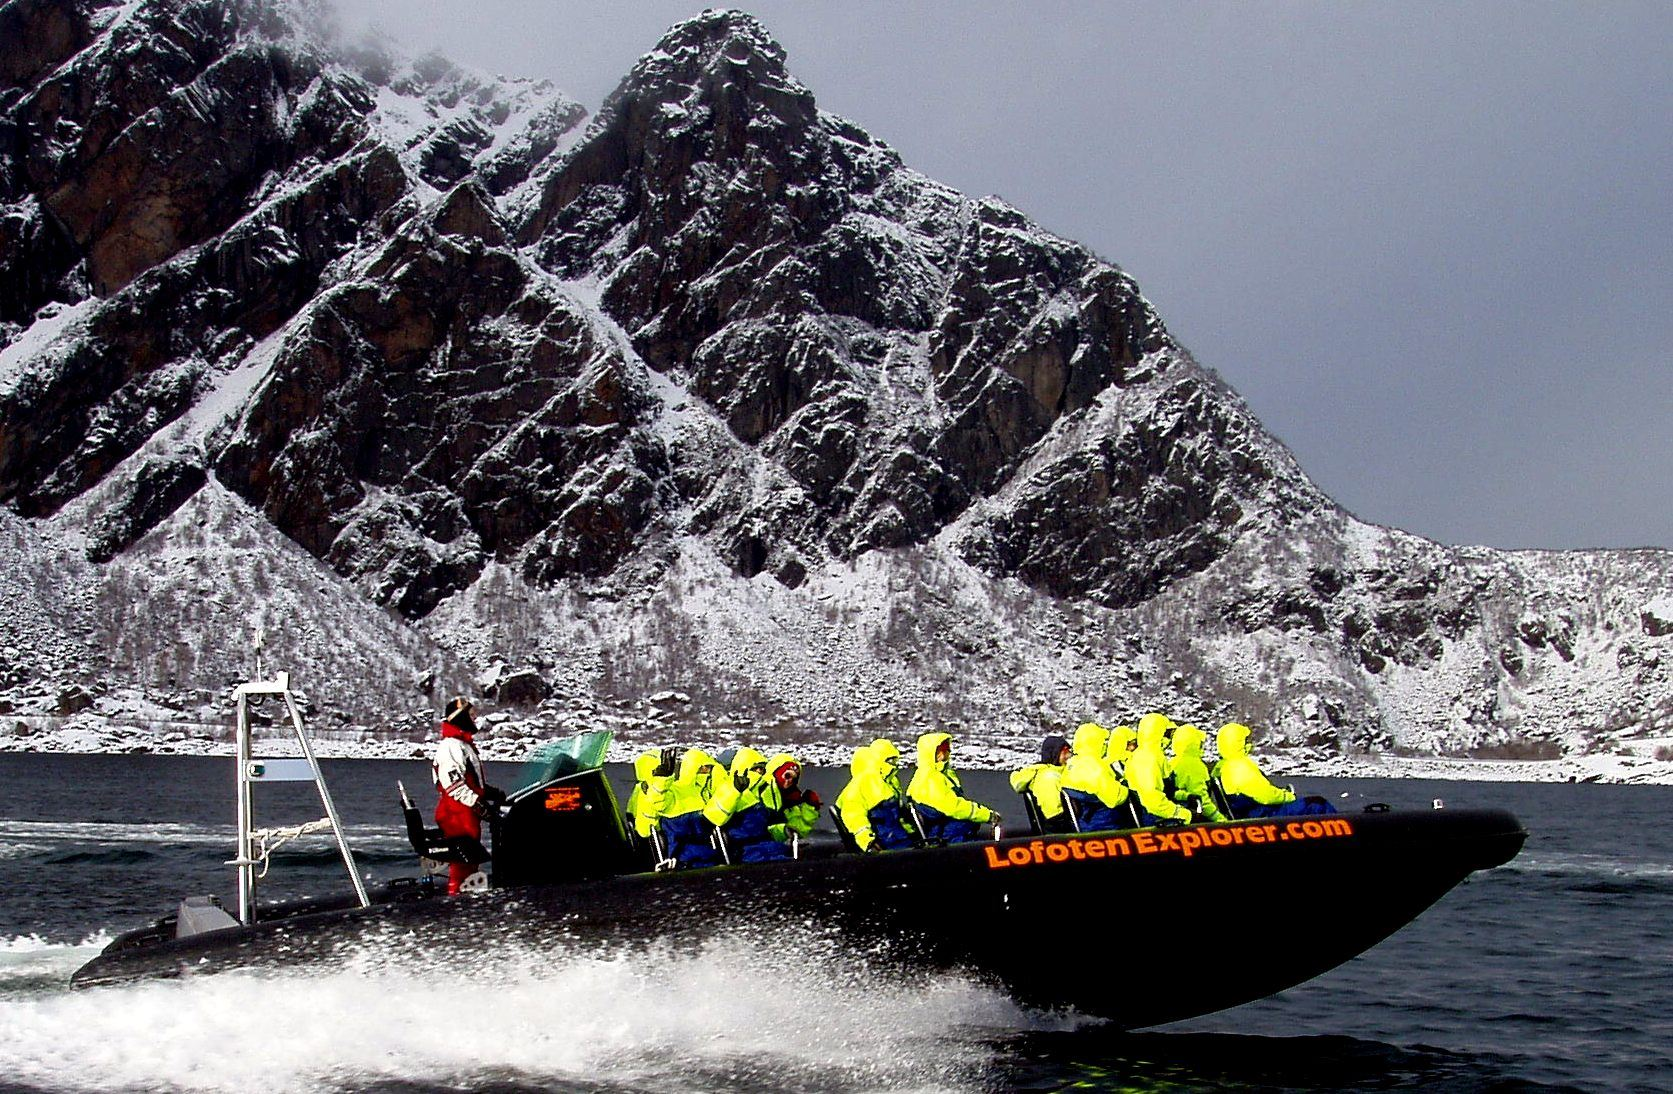 Explore Trolllfjord & Sea Eagle RIB Safari - Lofoten Explorer